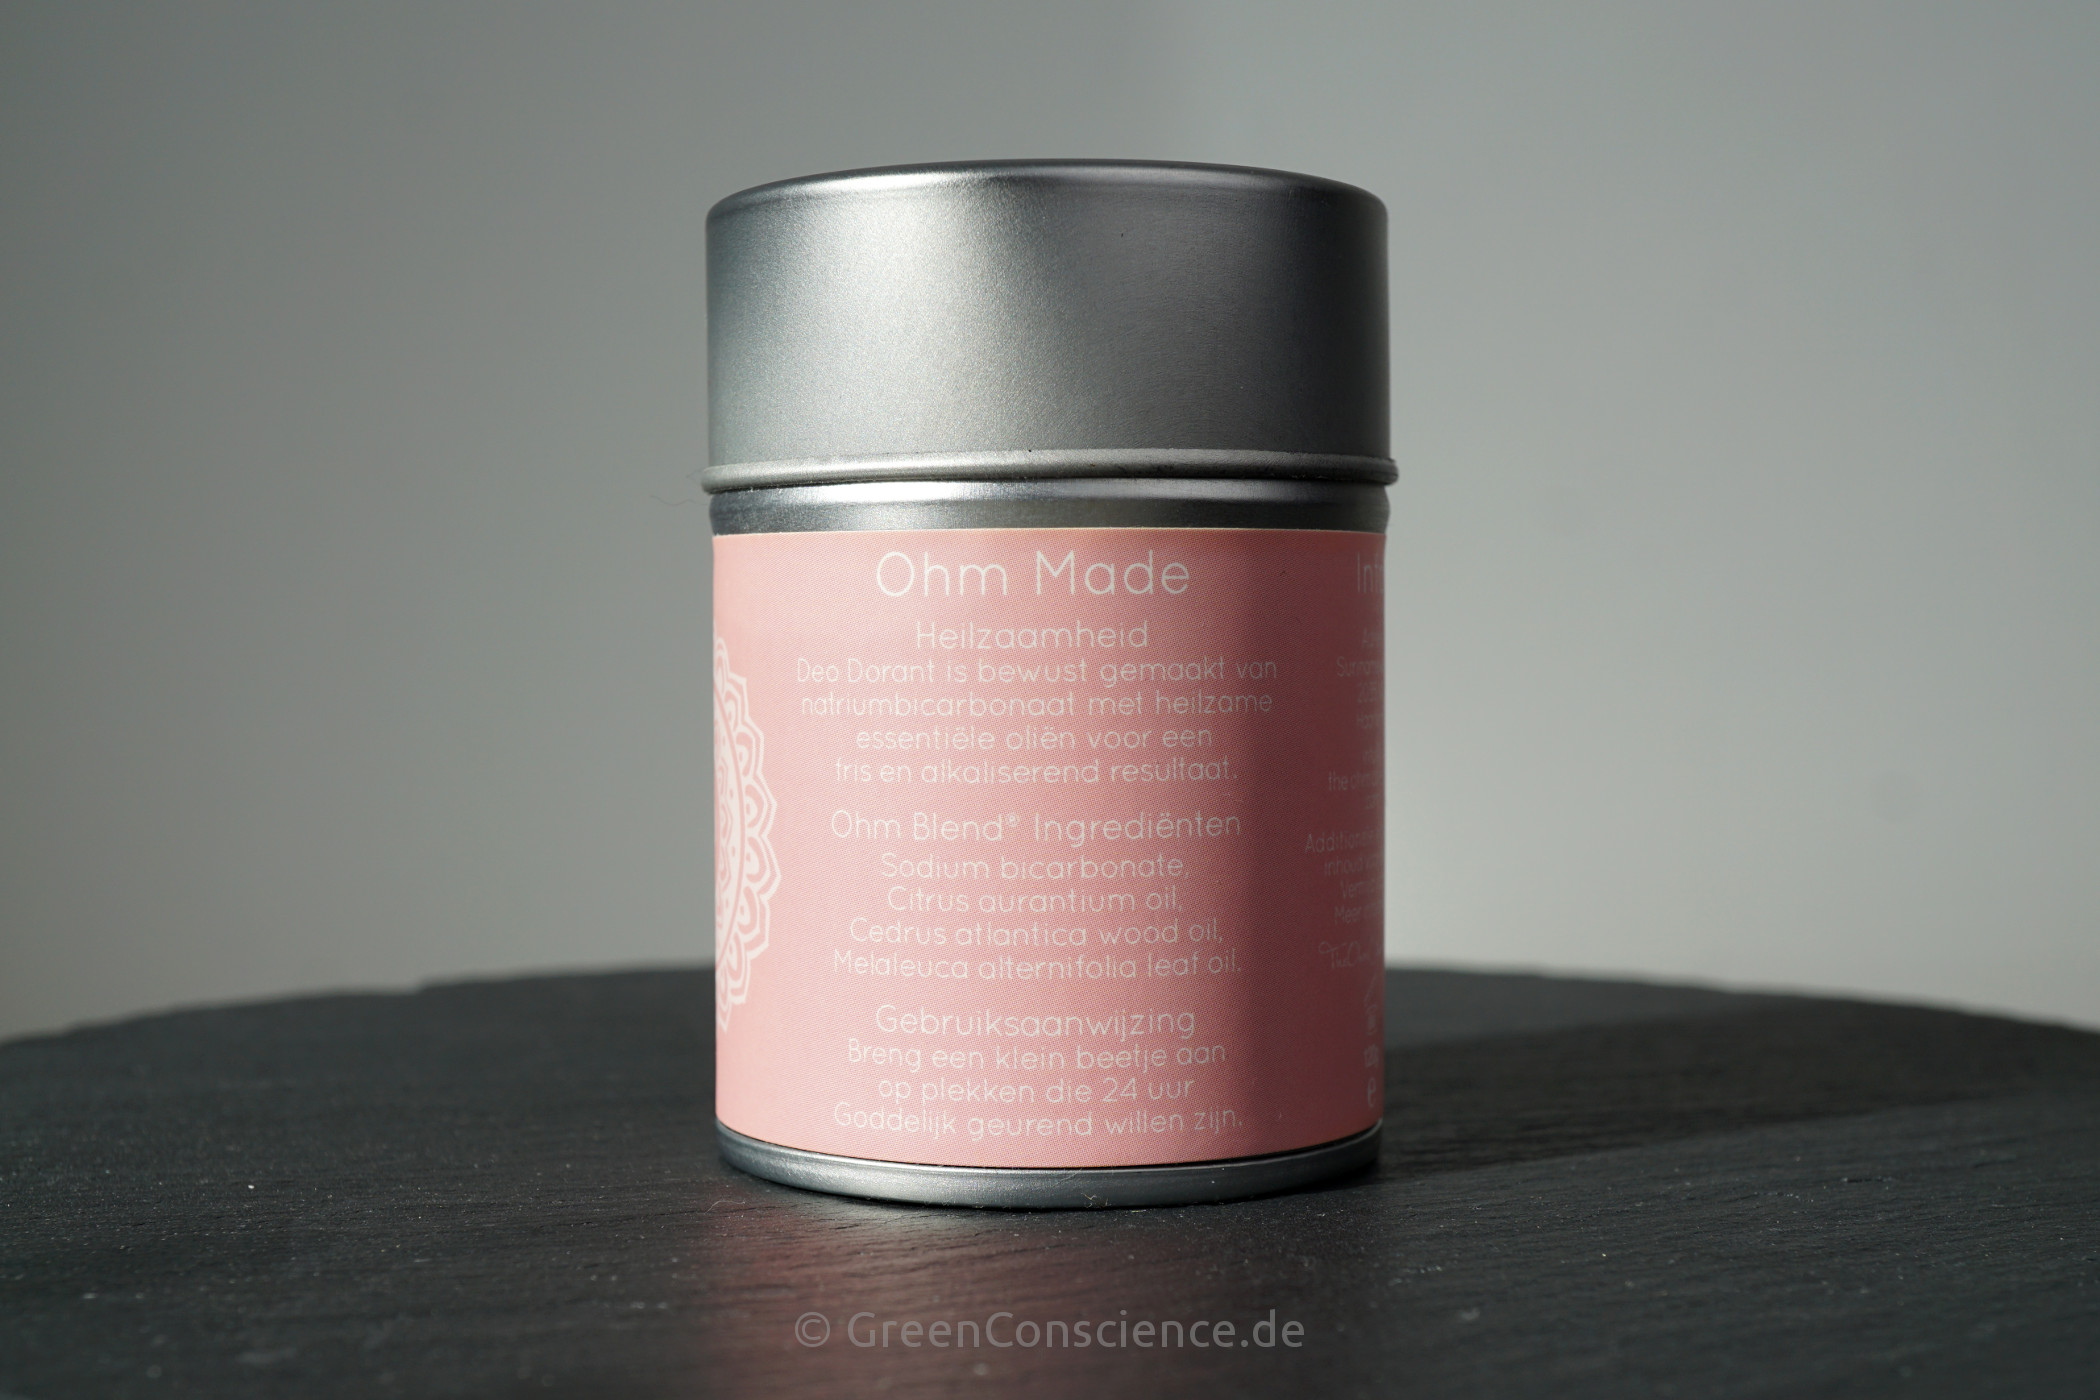 The Ohm Collection Deo Dorant Powder Neroli | Rückseite der Metalldose